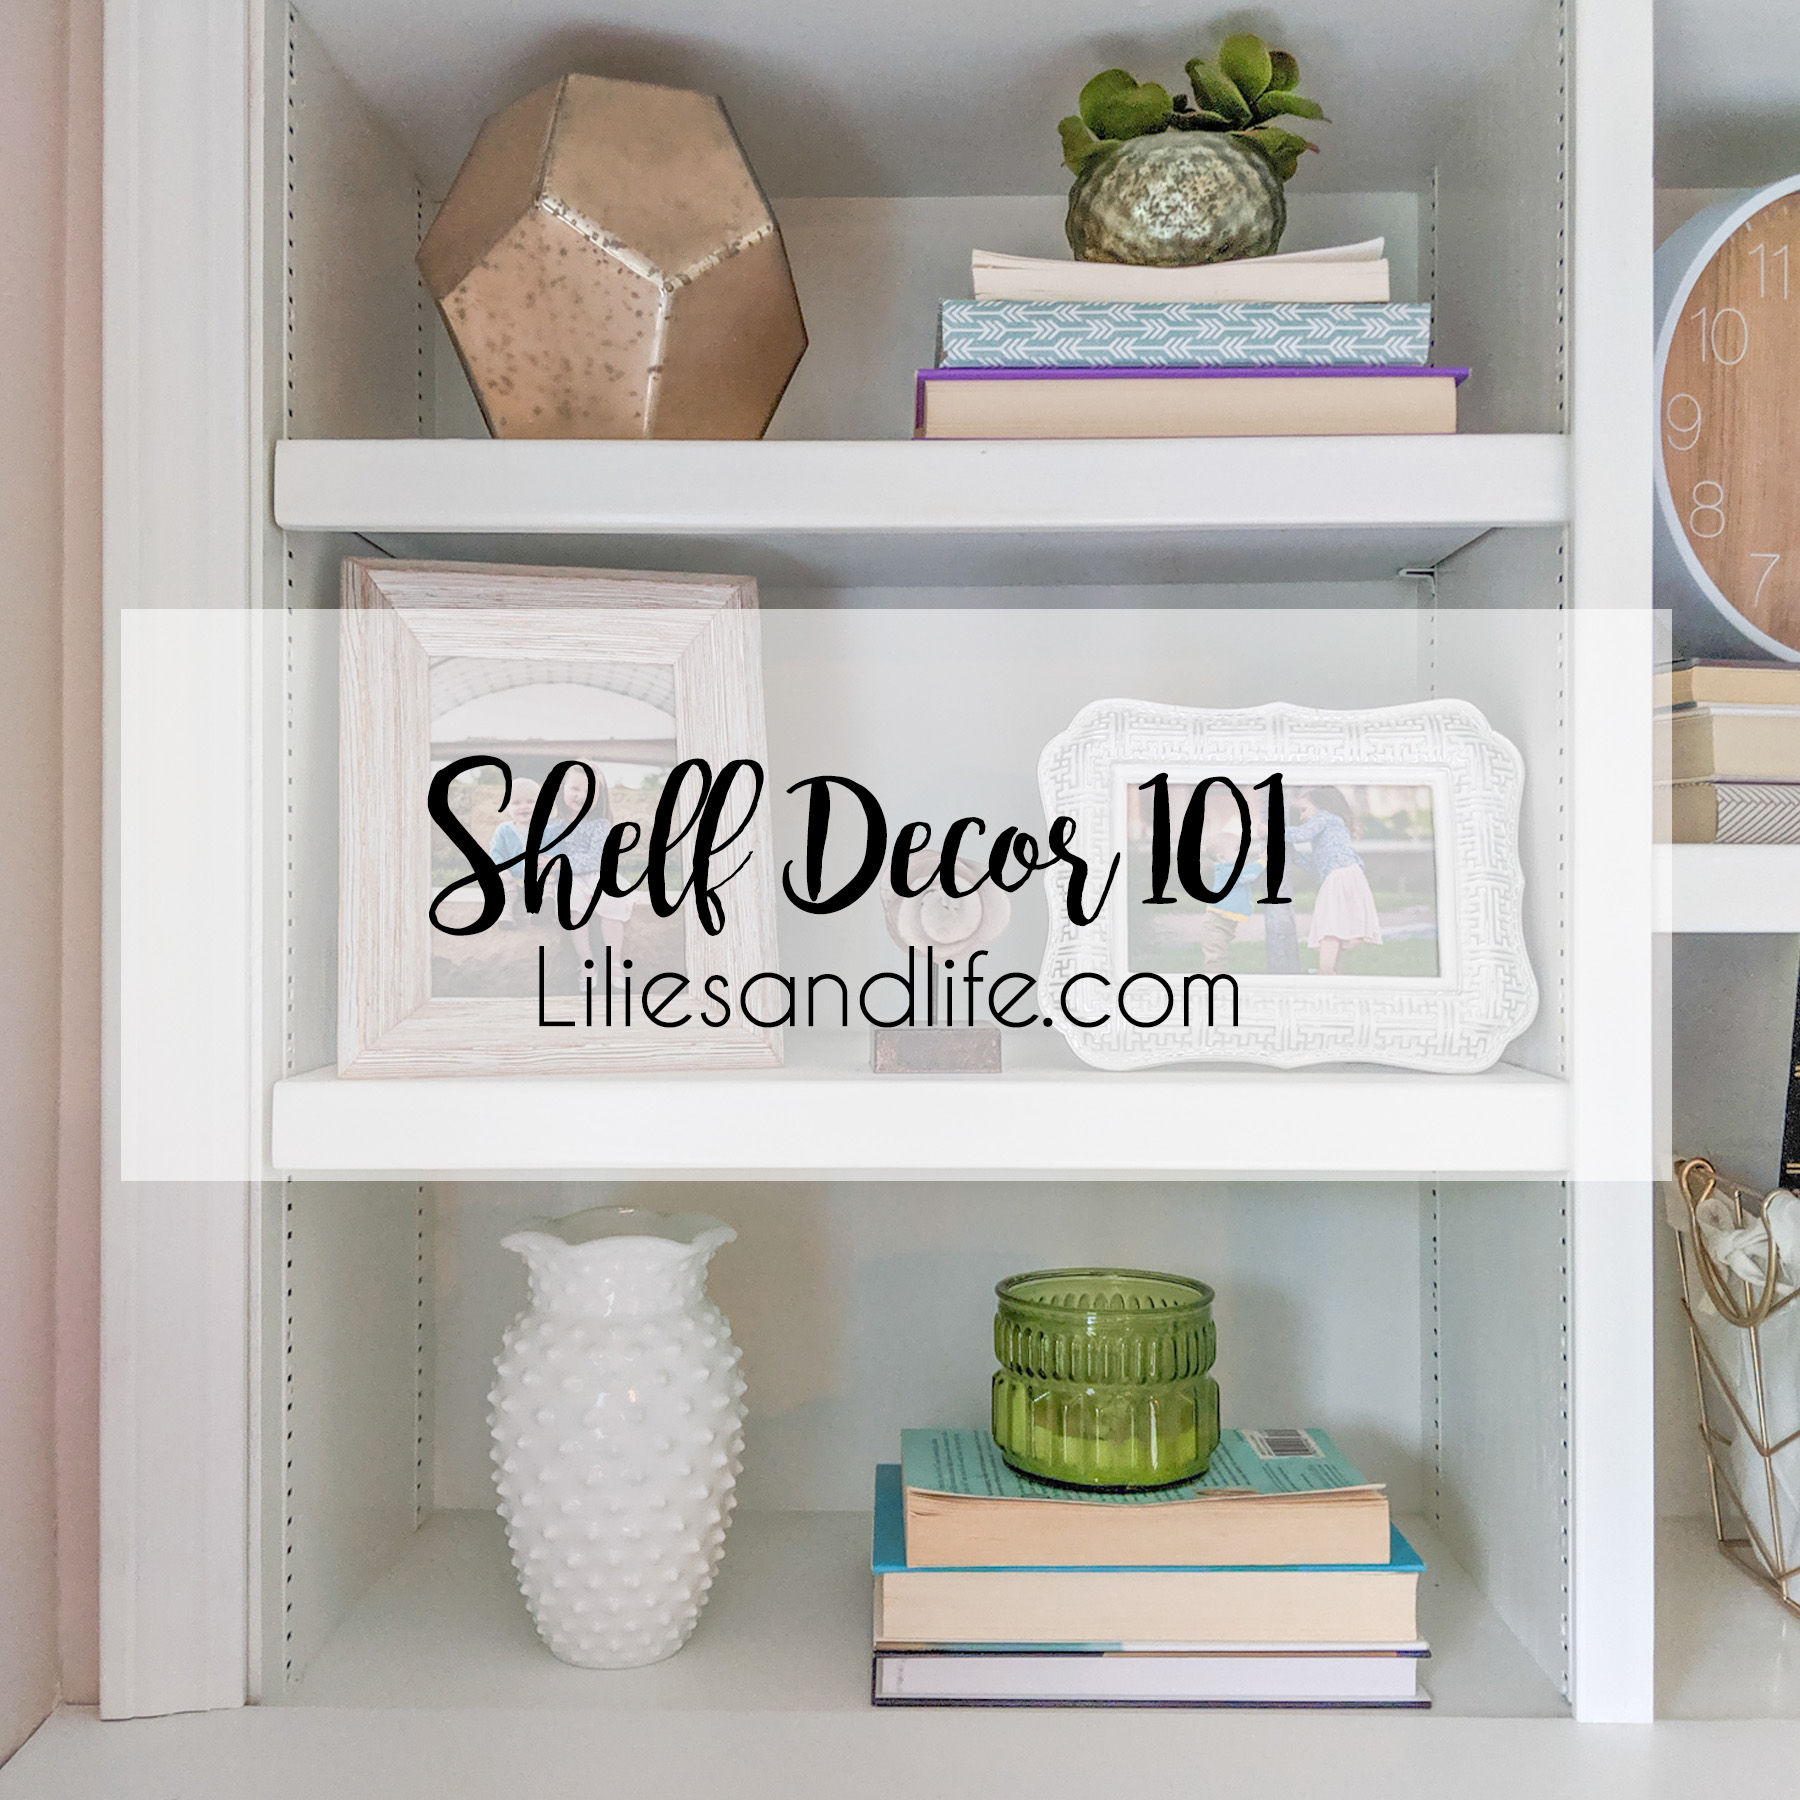 Shelf Decorating 101 Lilies And Life Interior Decorating Blog Home Decor Diy